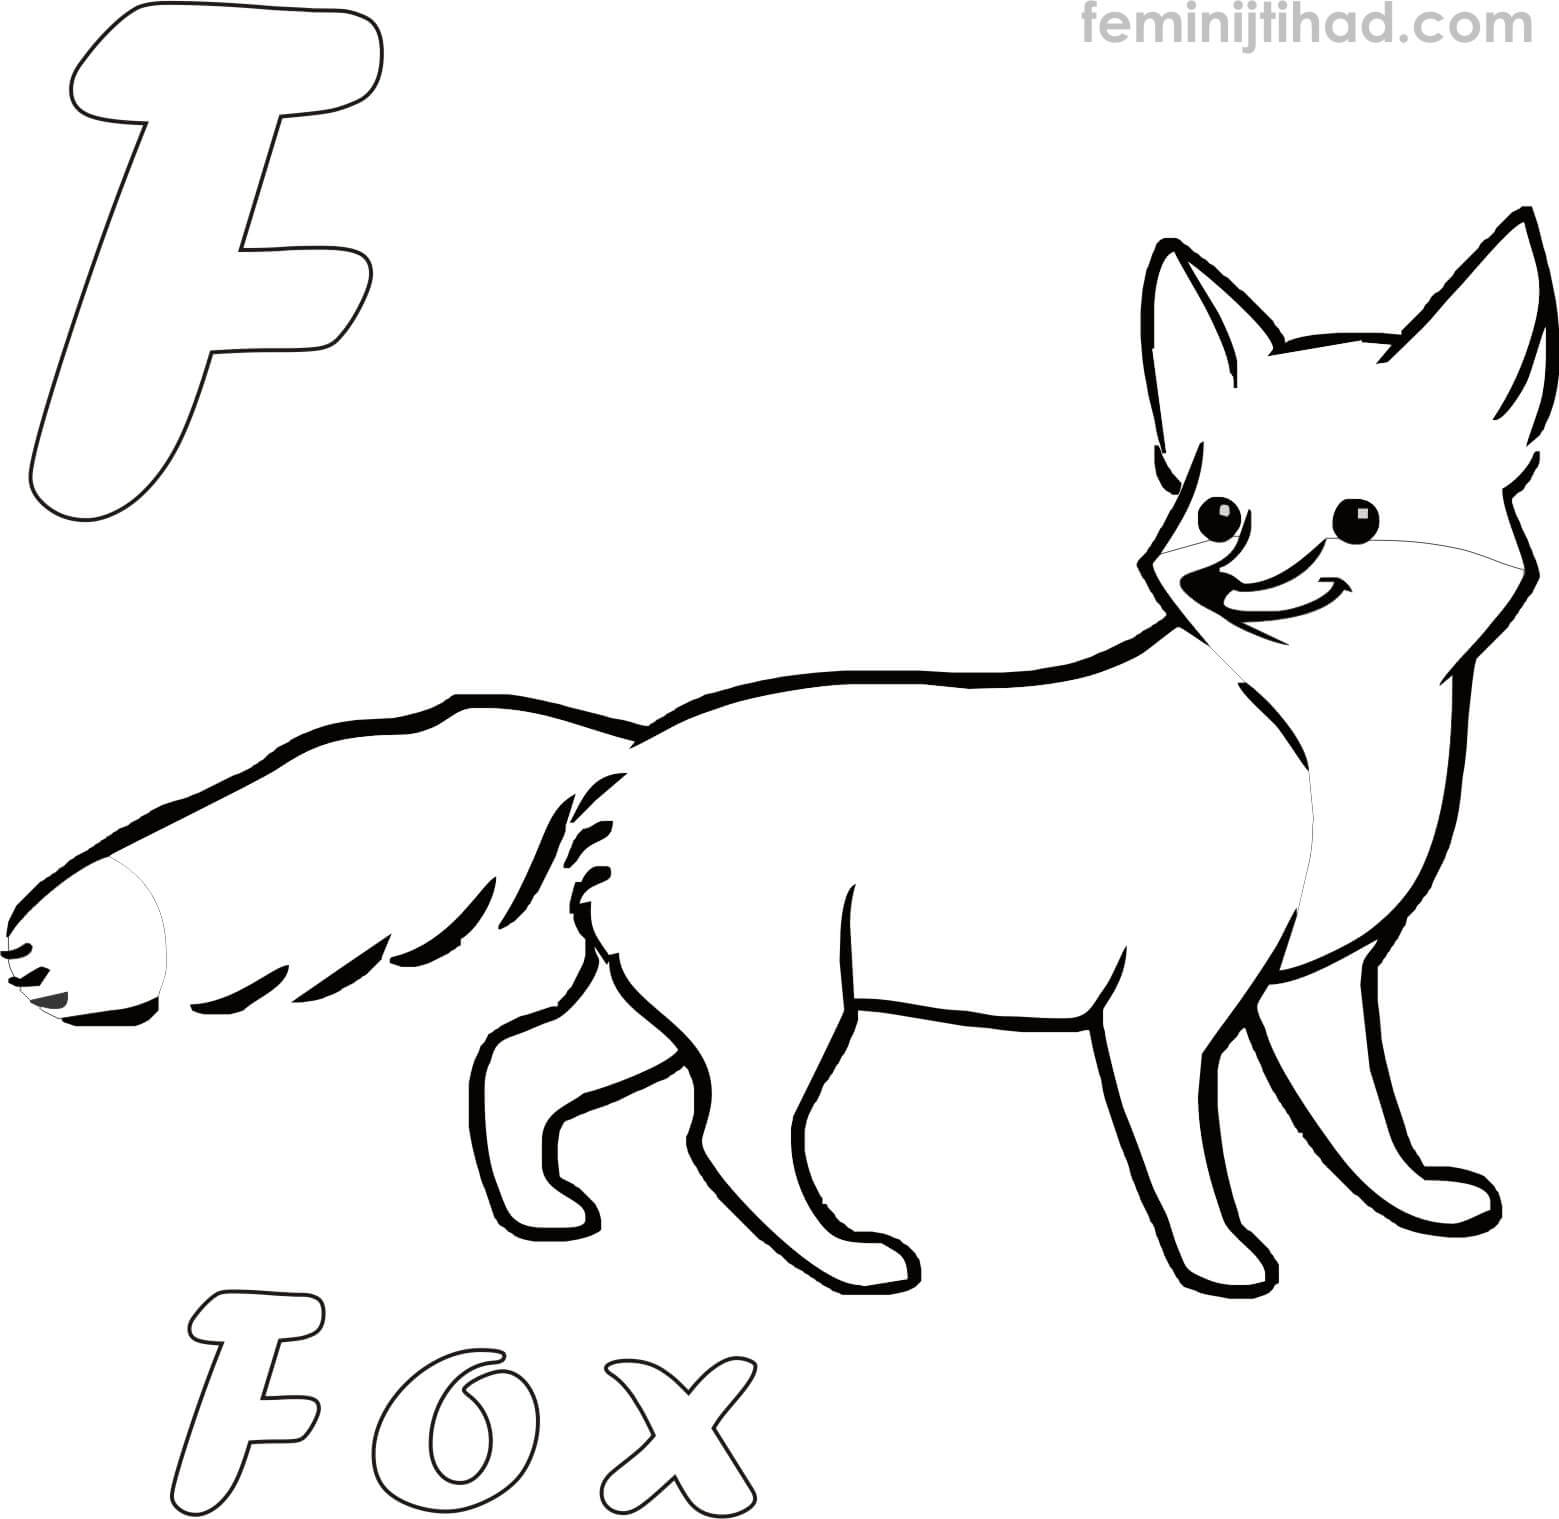 1559x1519 Printable Fox Coloring Pages Download Coloring Pages For Kids